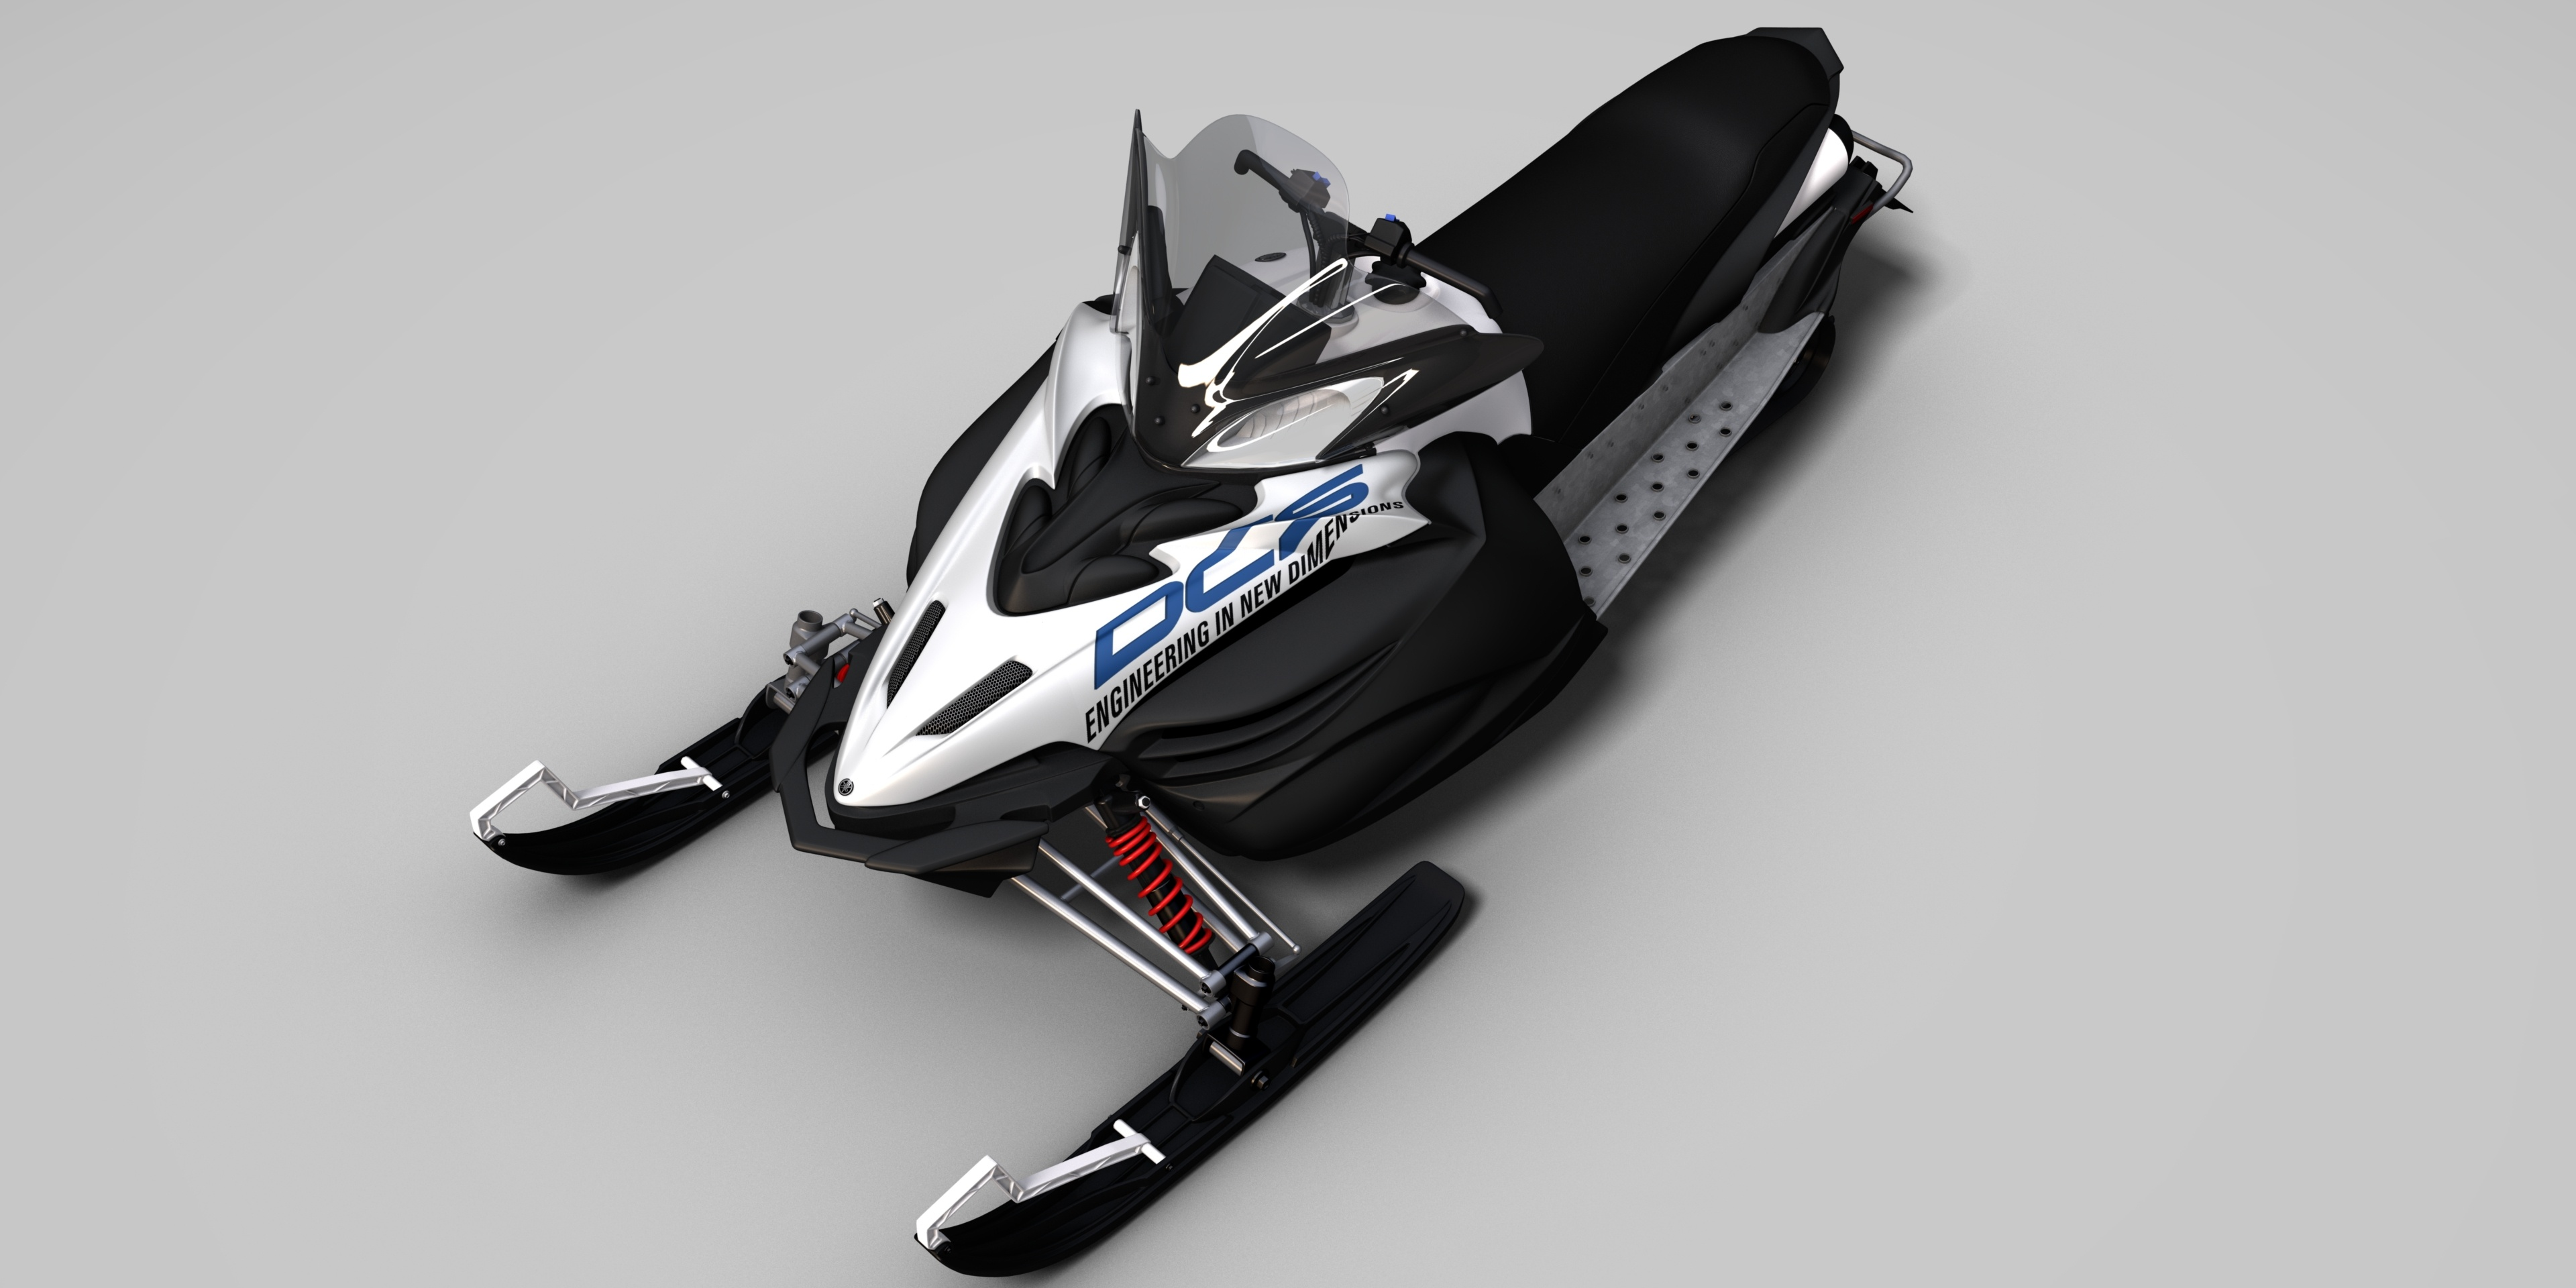 Snowmobile_Perceived Quality 2.jpg